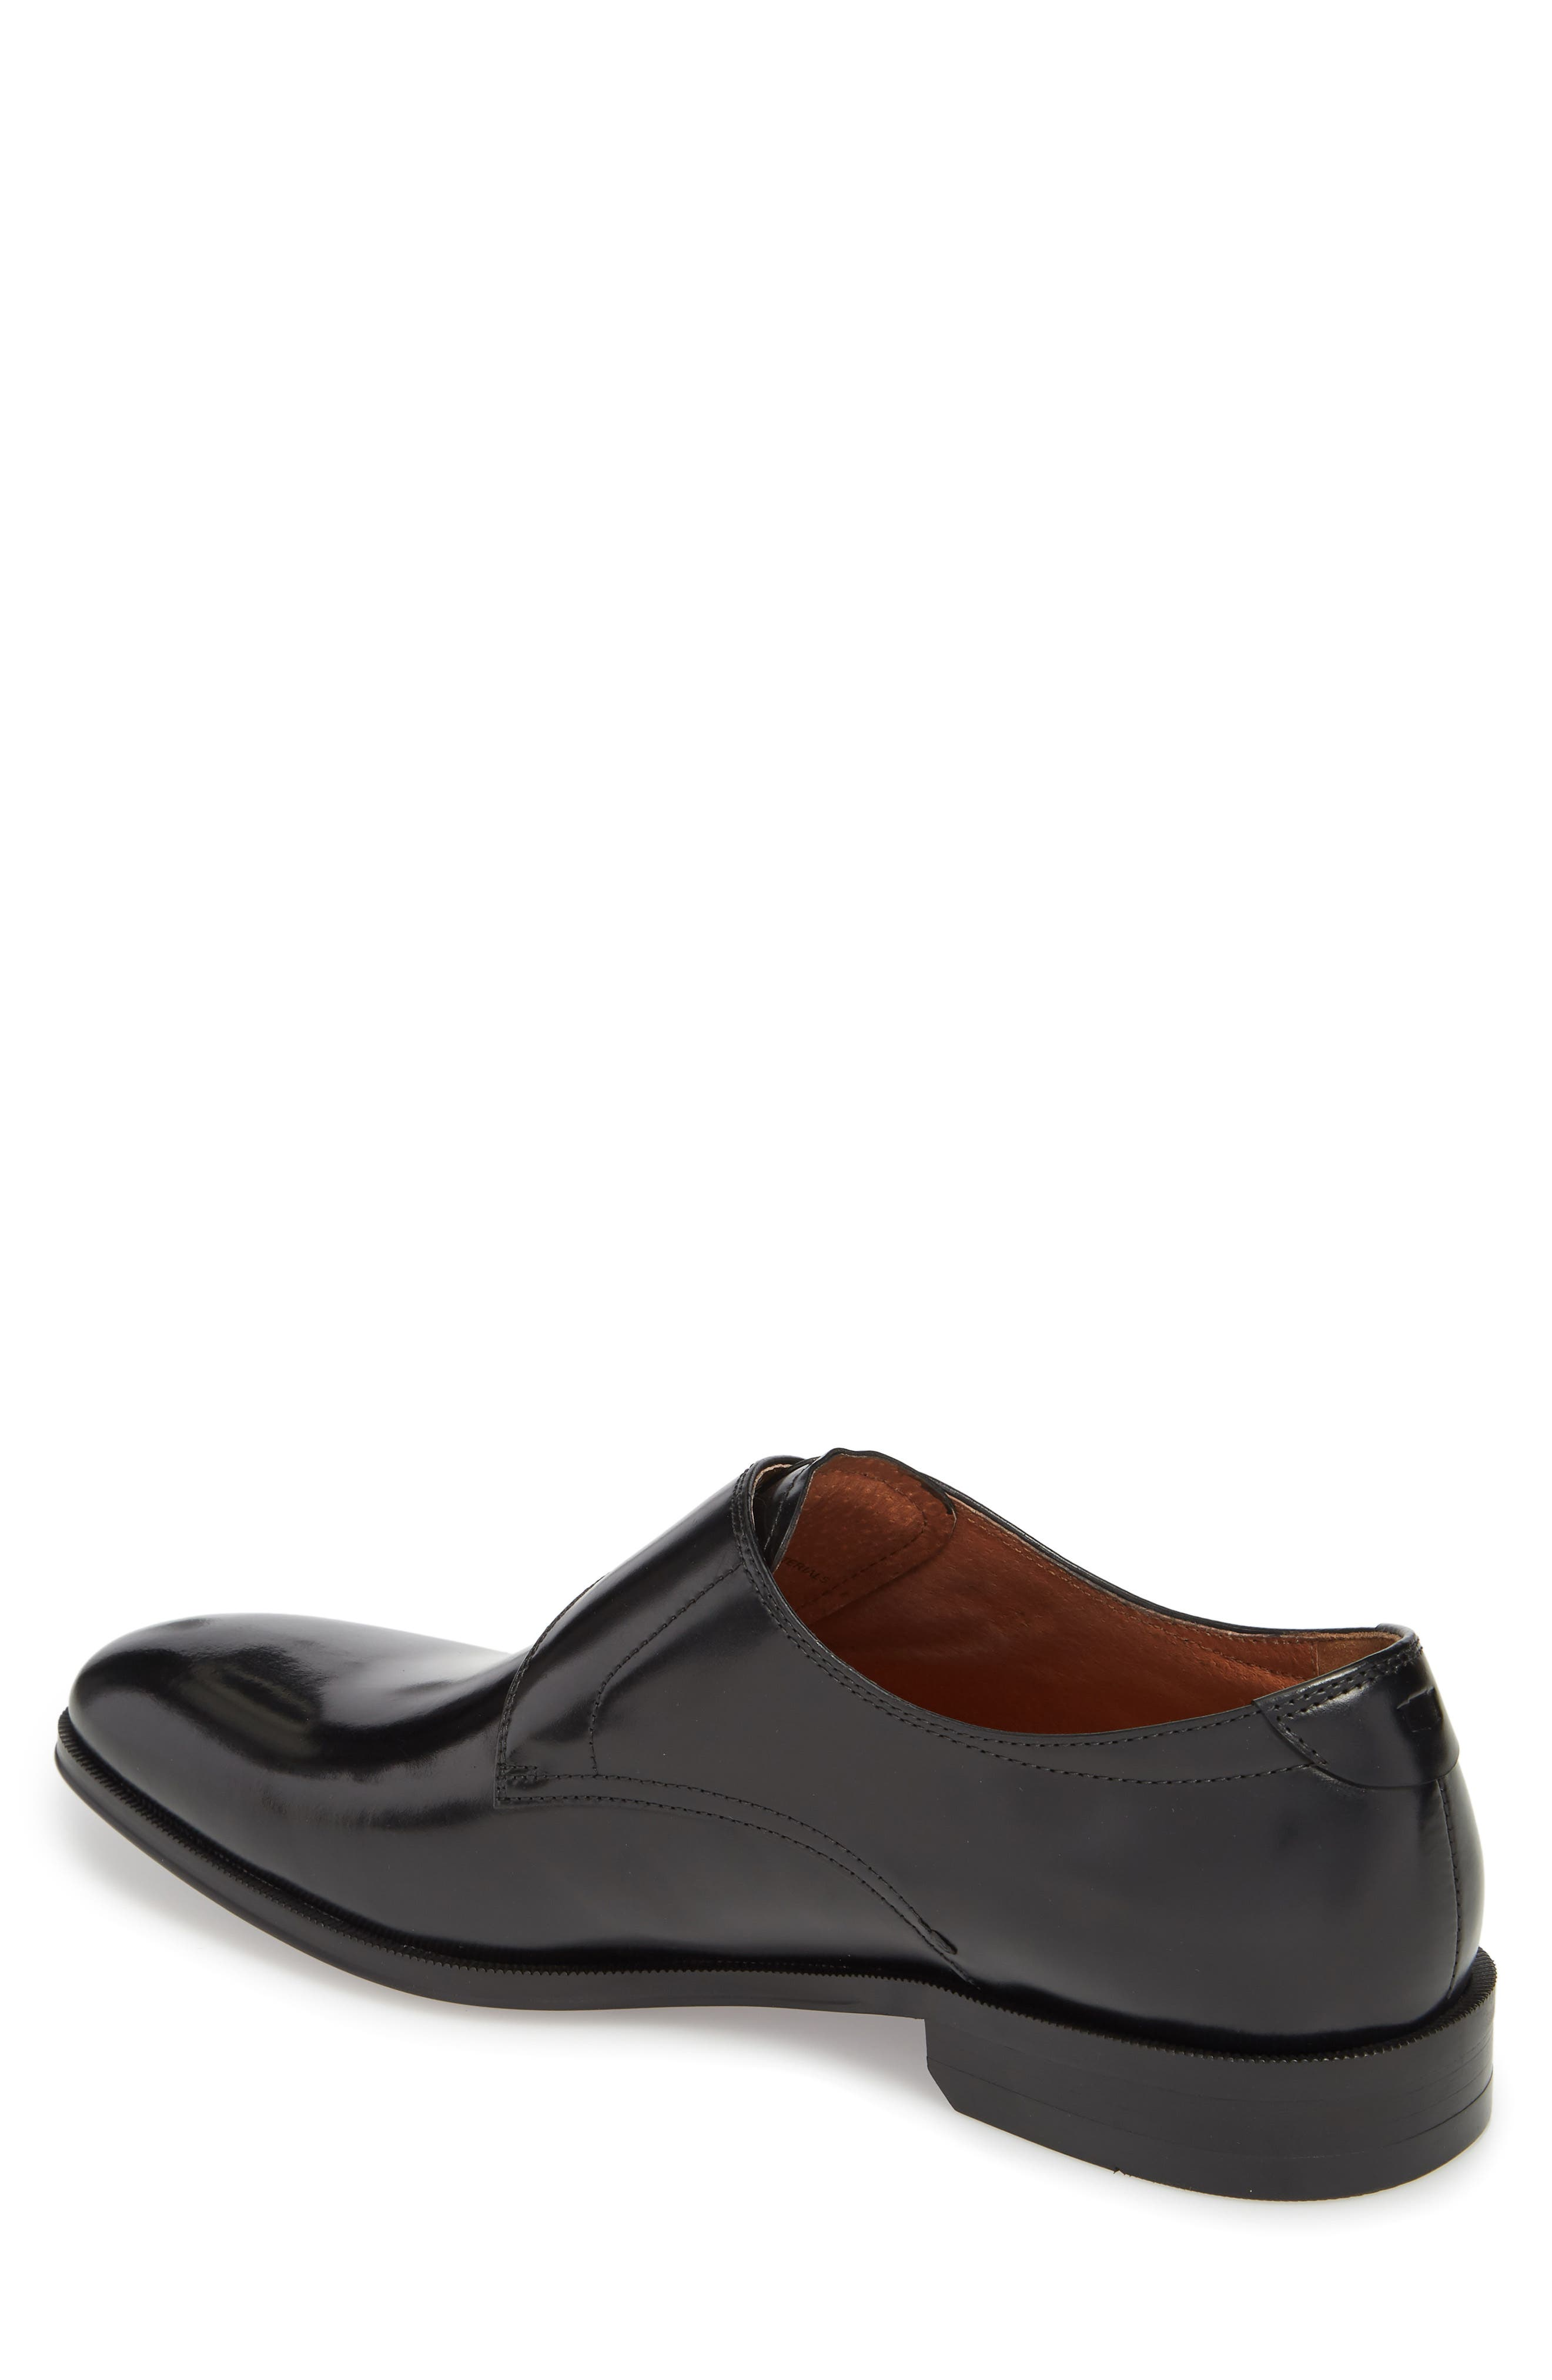 Belfast Single Strap Monk Shoe,                             Alternate thumbnail 2, color,                             BLACK LEATHER